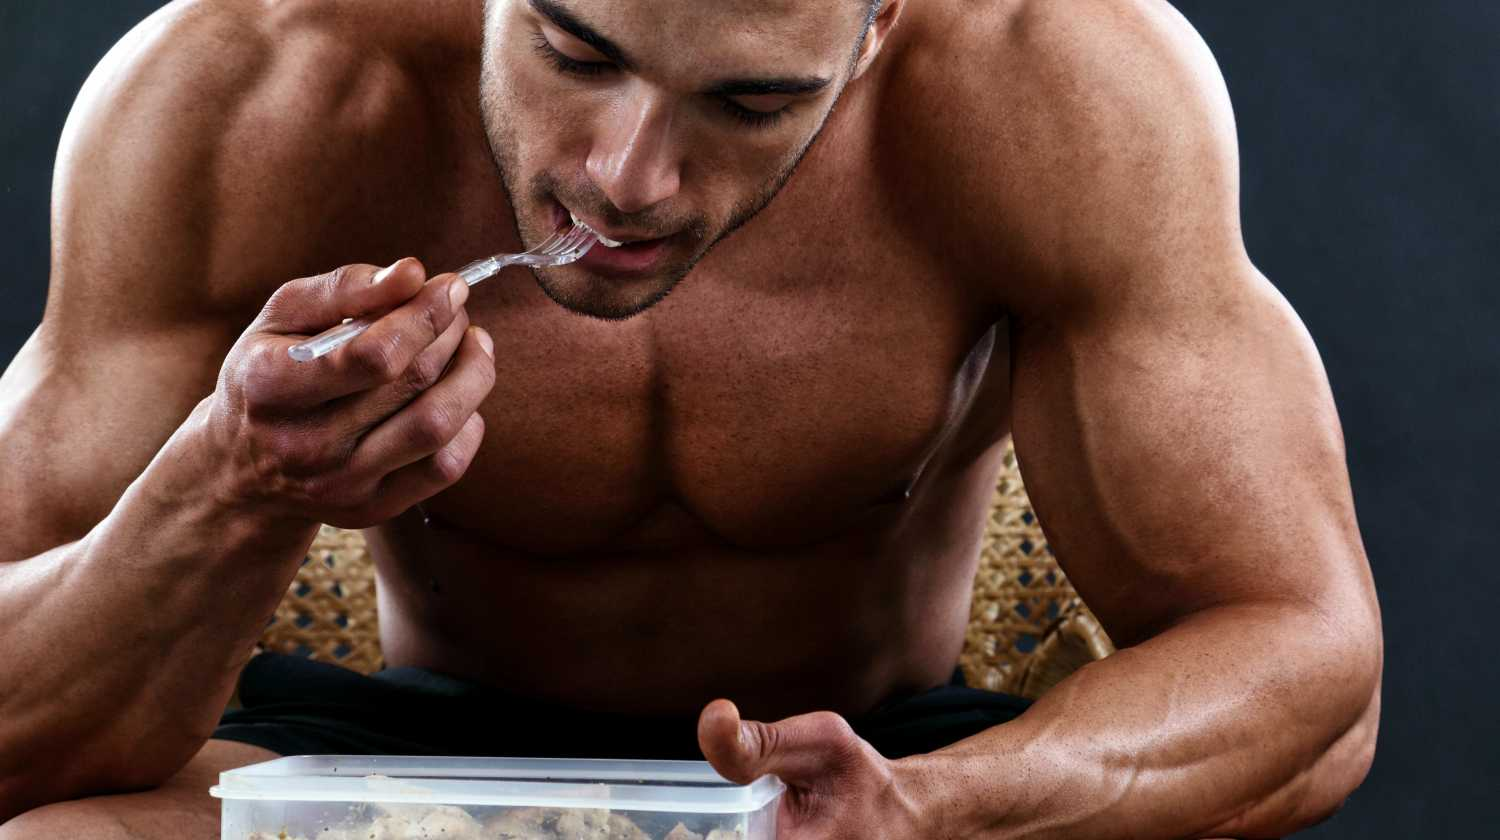 young bodybuilder eating between exercises Lean Muscle ss Feature